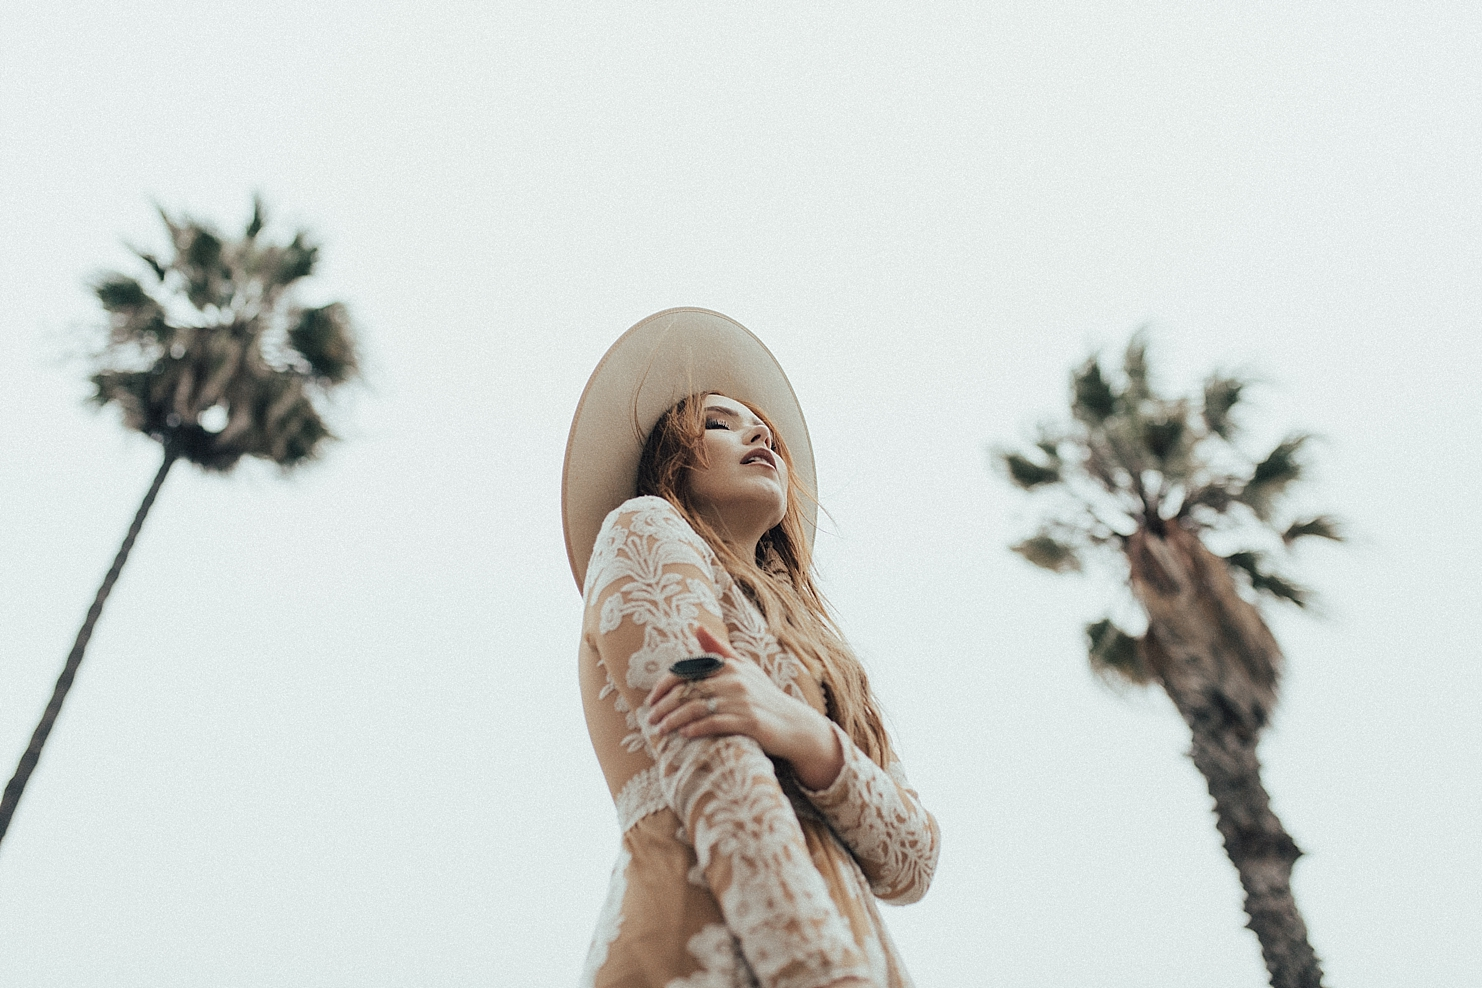 LONG BEACH ELOPEMENT INDIE BRIDE BOHO LOS ANGELES PHOTOGRAPHER RACHEL WAKEFIELD LA ELOPEMENT PHOTOGRAPHER-58.jpg